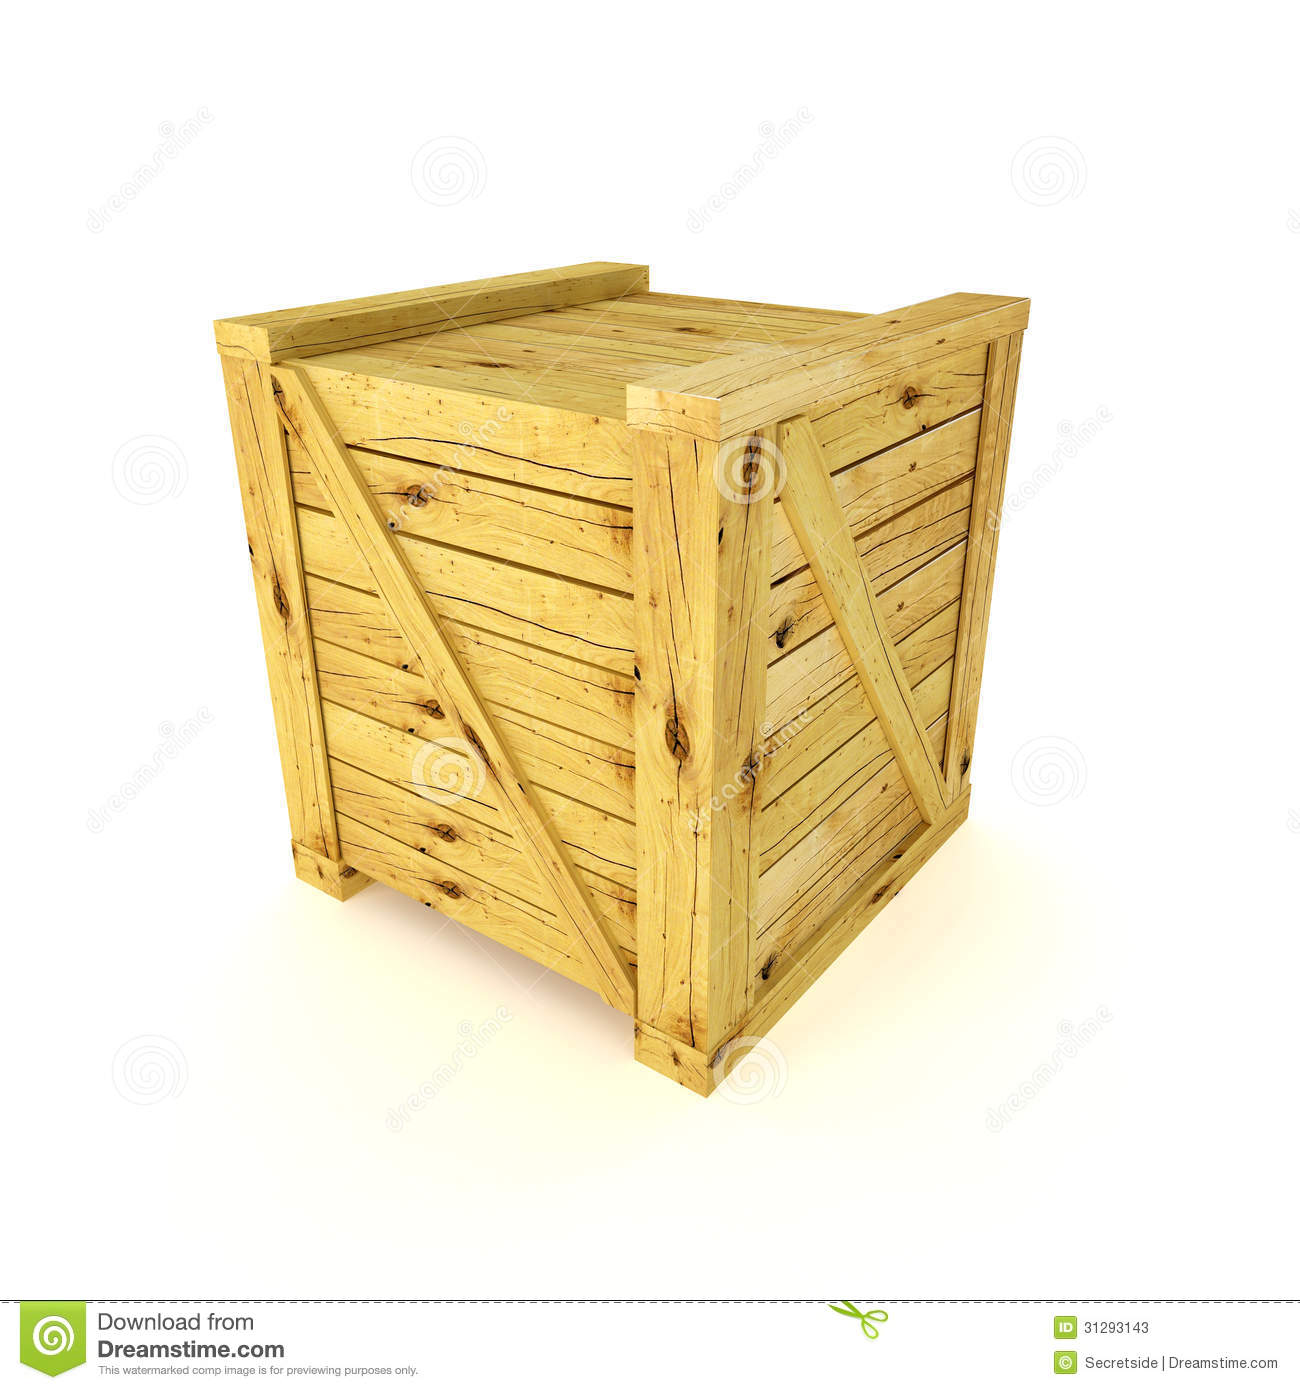 Wood crate or container on white background.